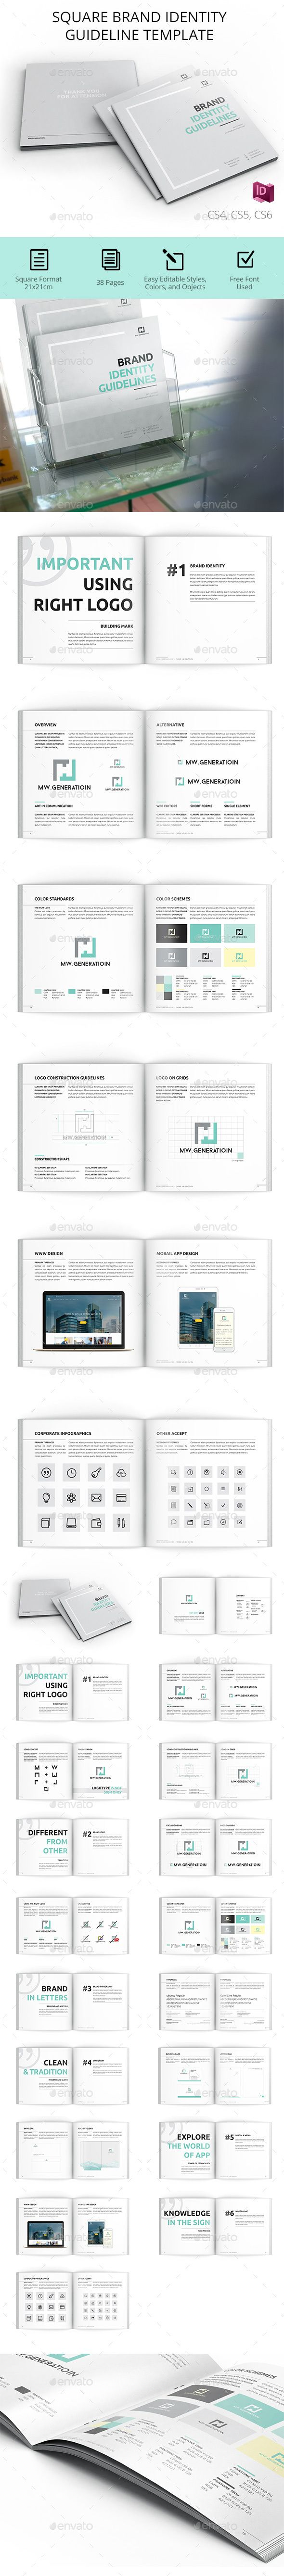 Clean Brand Manual  InDesign Template • Download ↓ https://graphicriver.net/item/clean-brand-manual/16997550?ref=pxcr